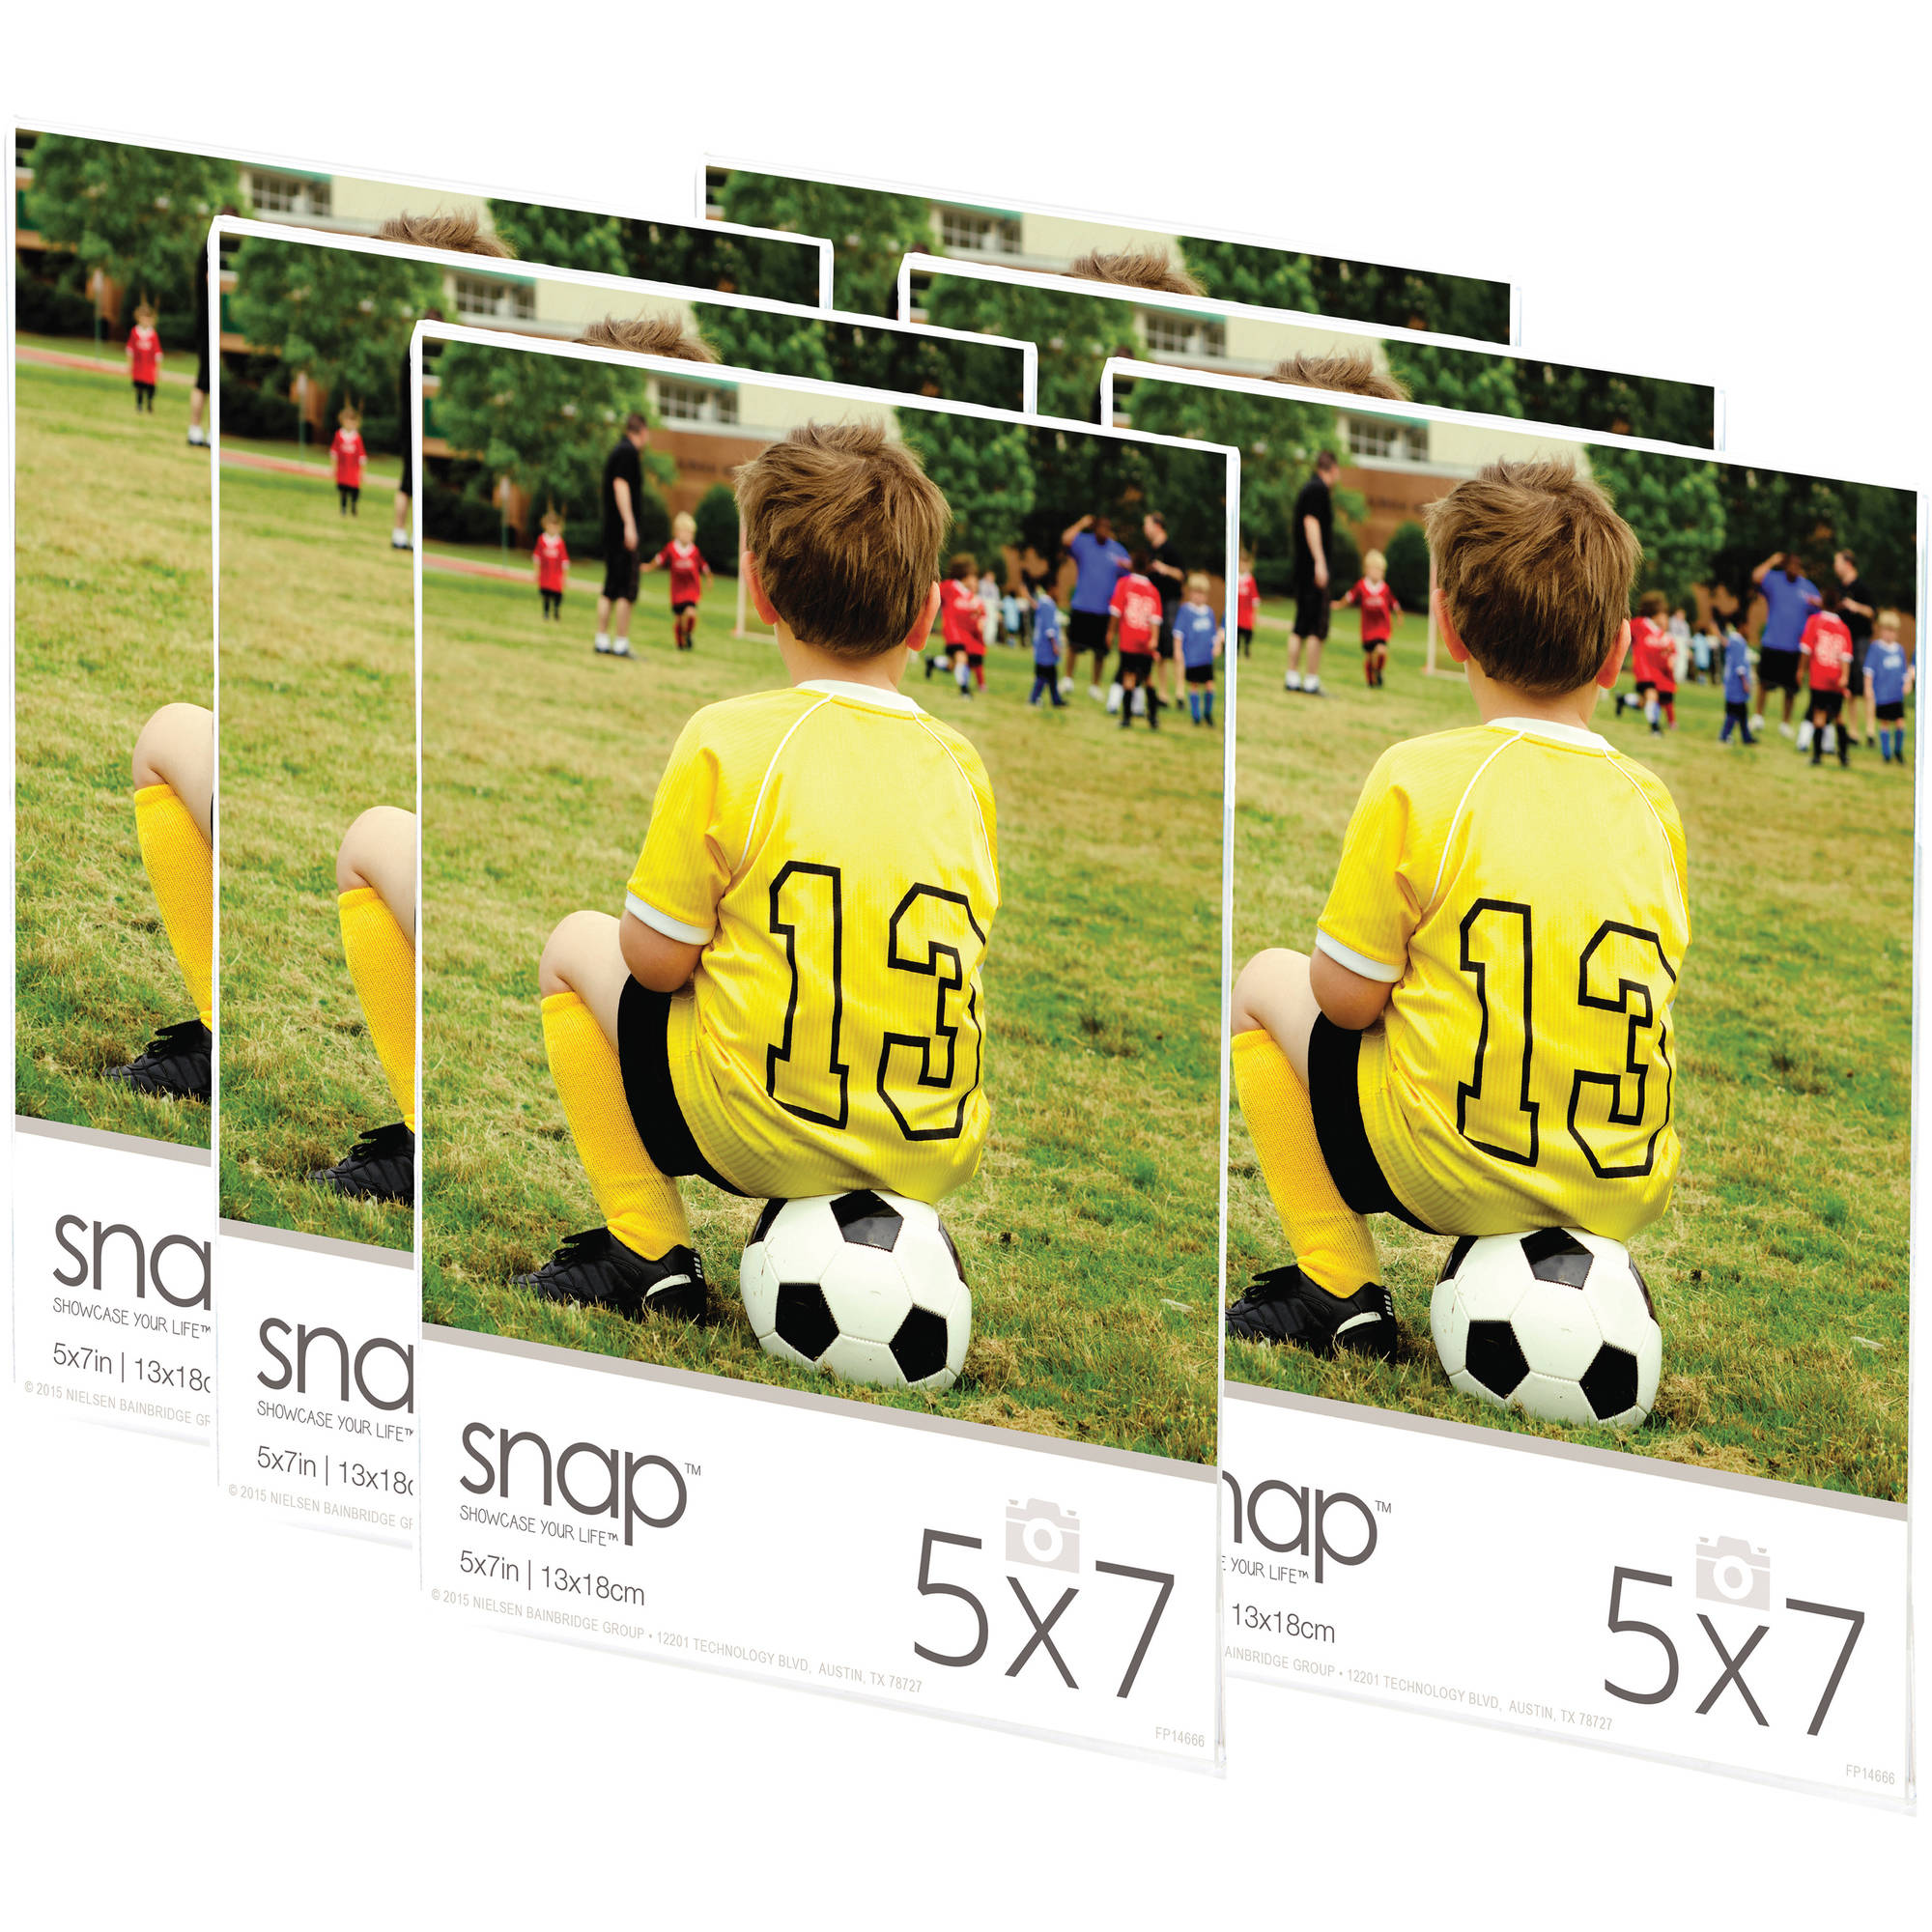 Snap 5x7 Magnetic Acrylic Frame, Set of 6